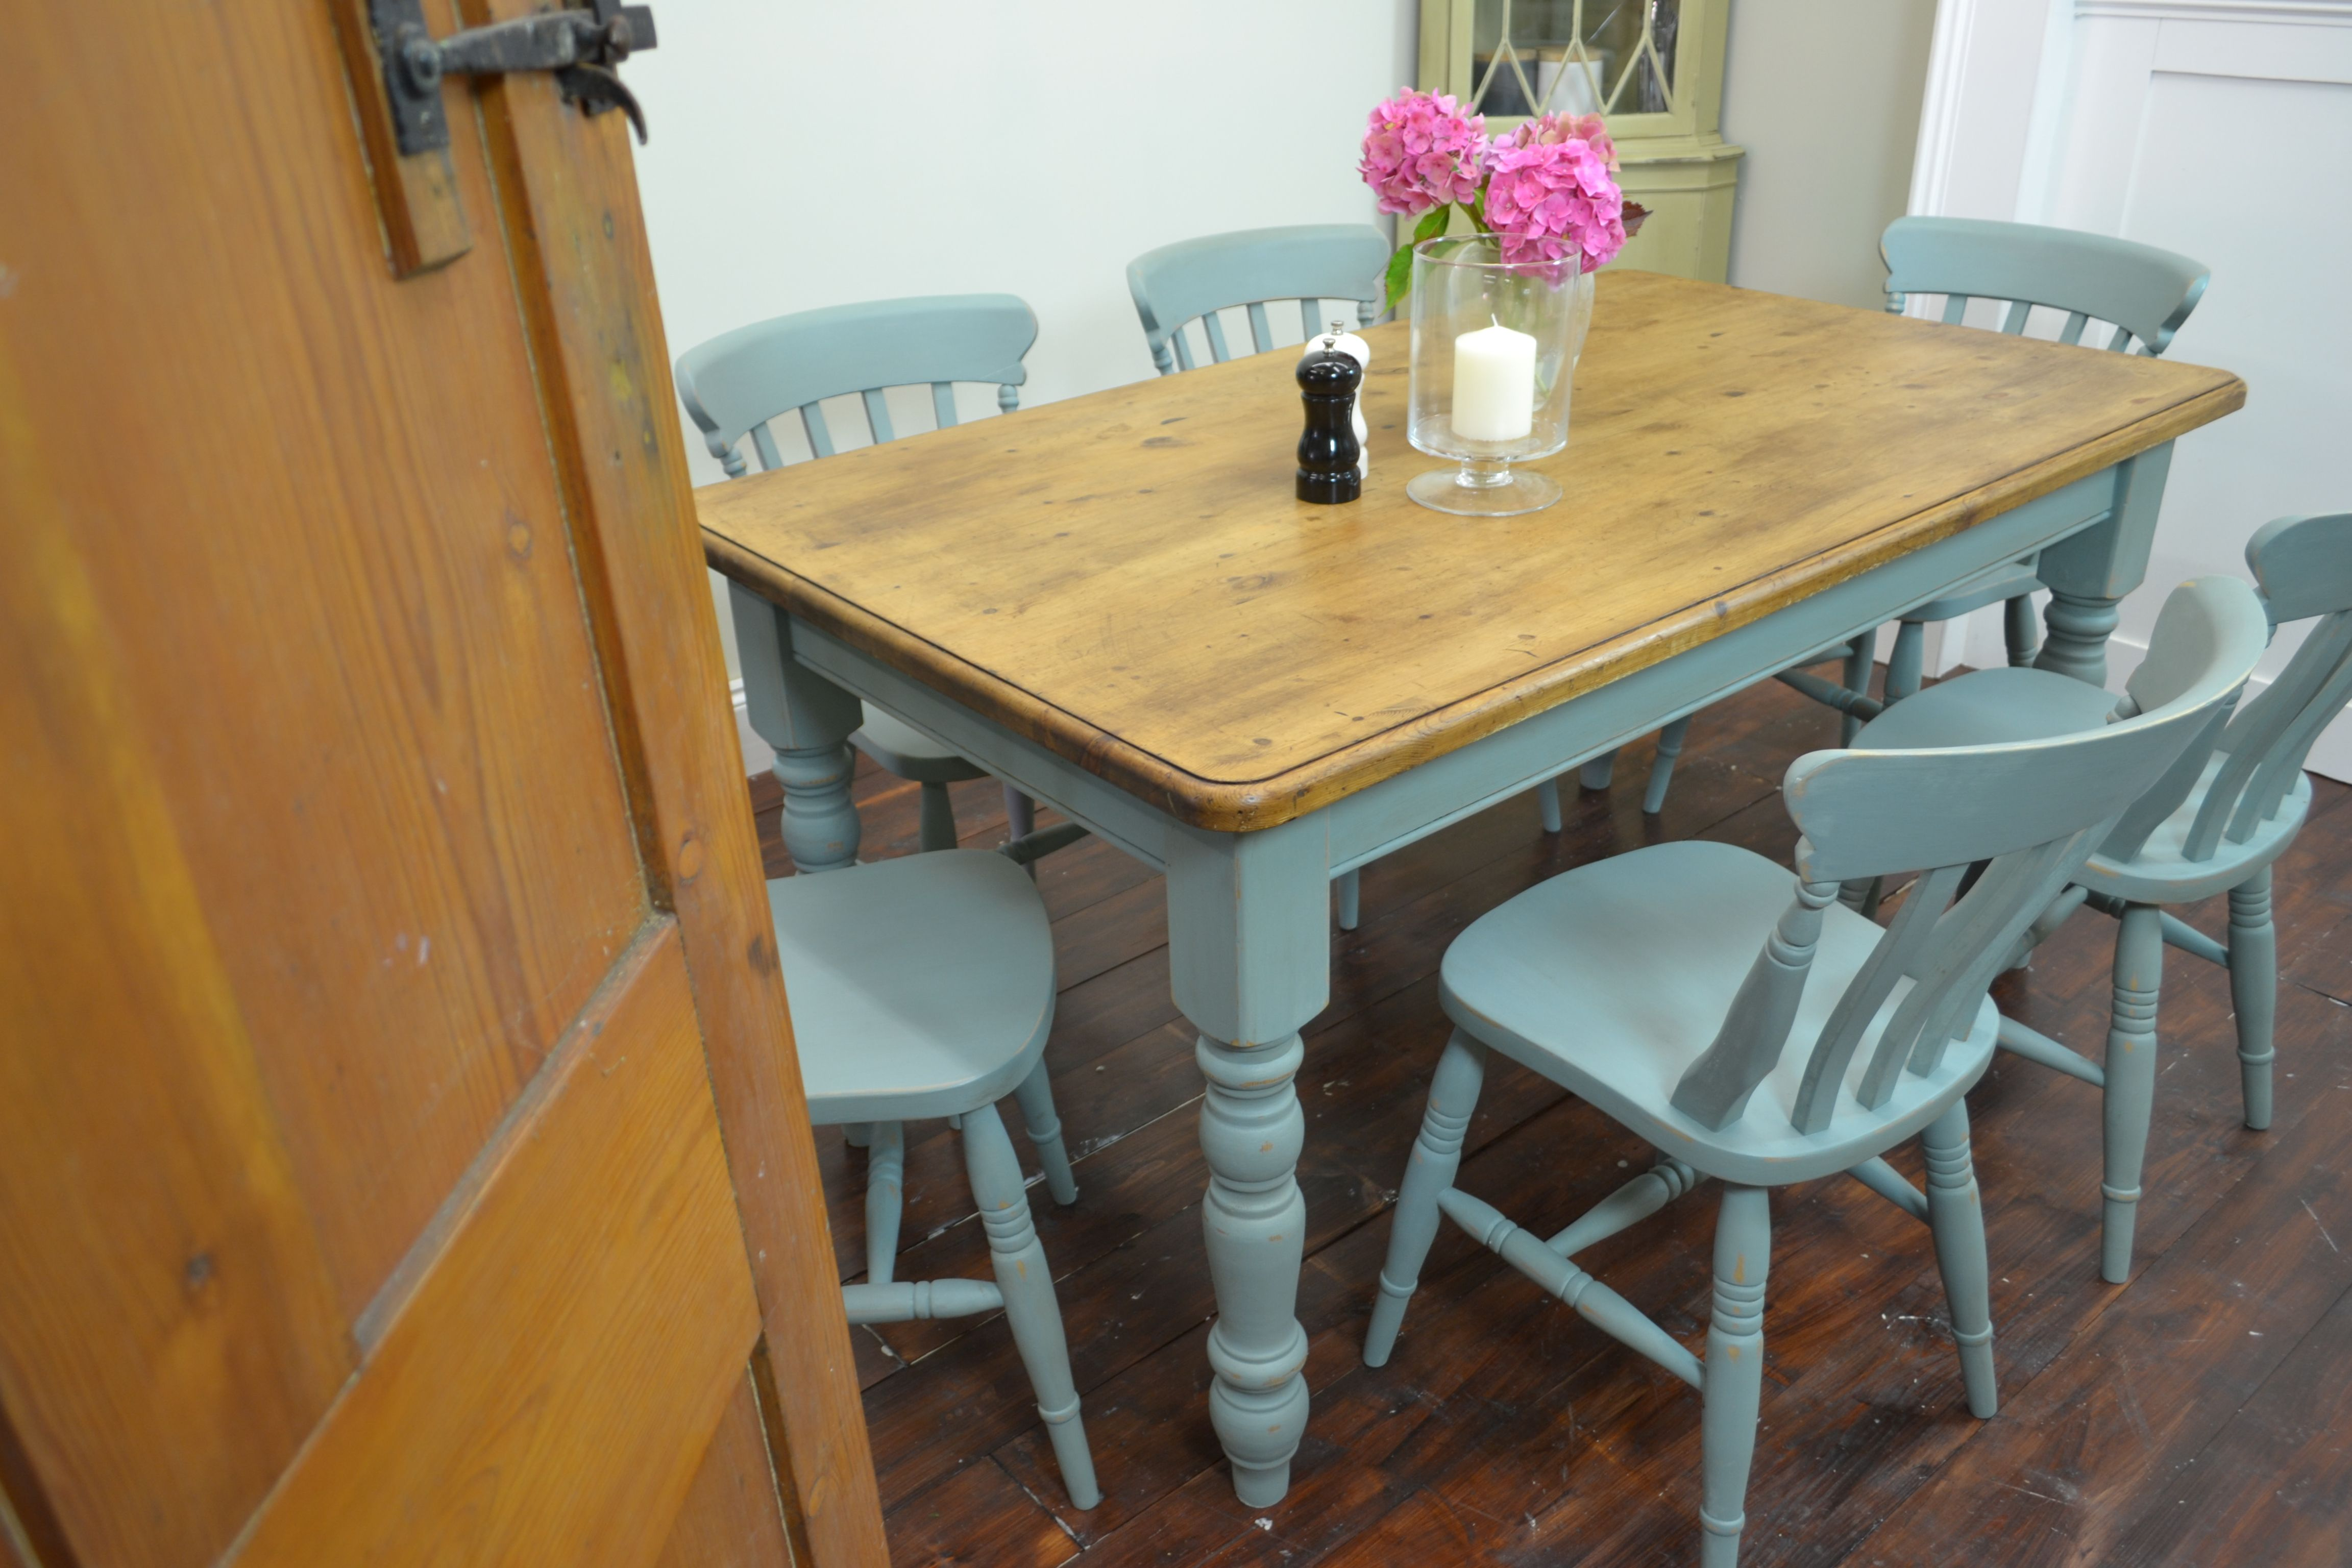 Country Dining Table with 6 Chairs Painted in Duck Egg ...